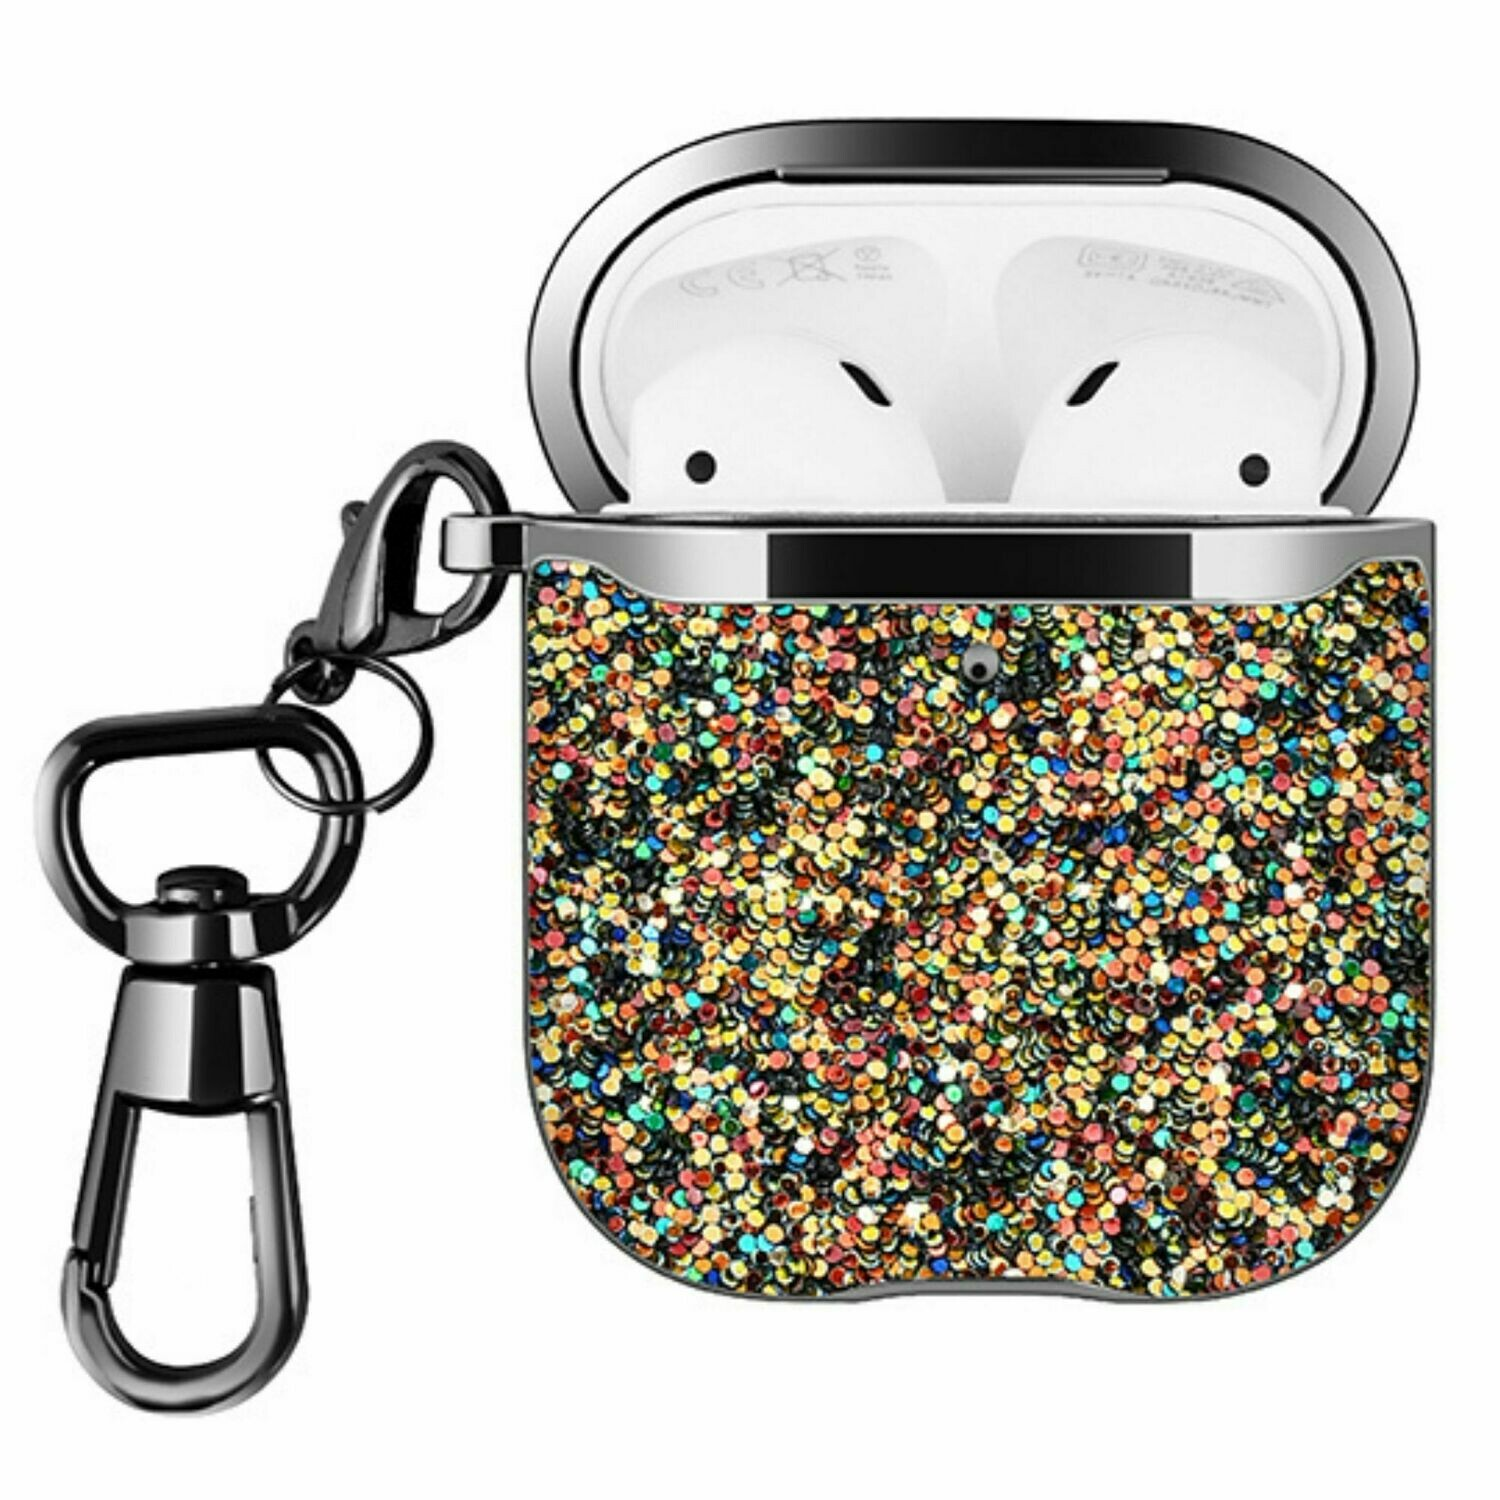 For Apple Airpods 1 2 Hard Case Cover Superior Quality Rhinestone Design TPU Protective | Shock Proof (Mixed Dazzle)